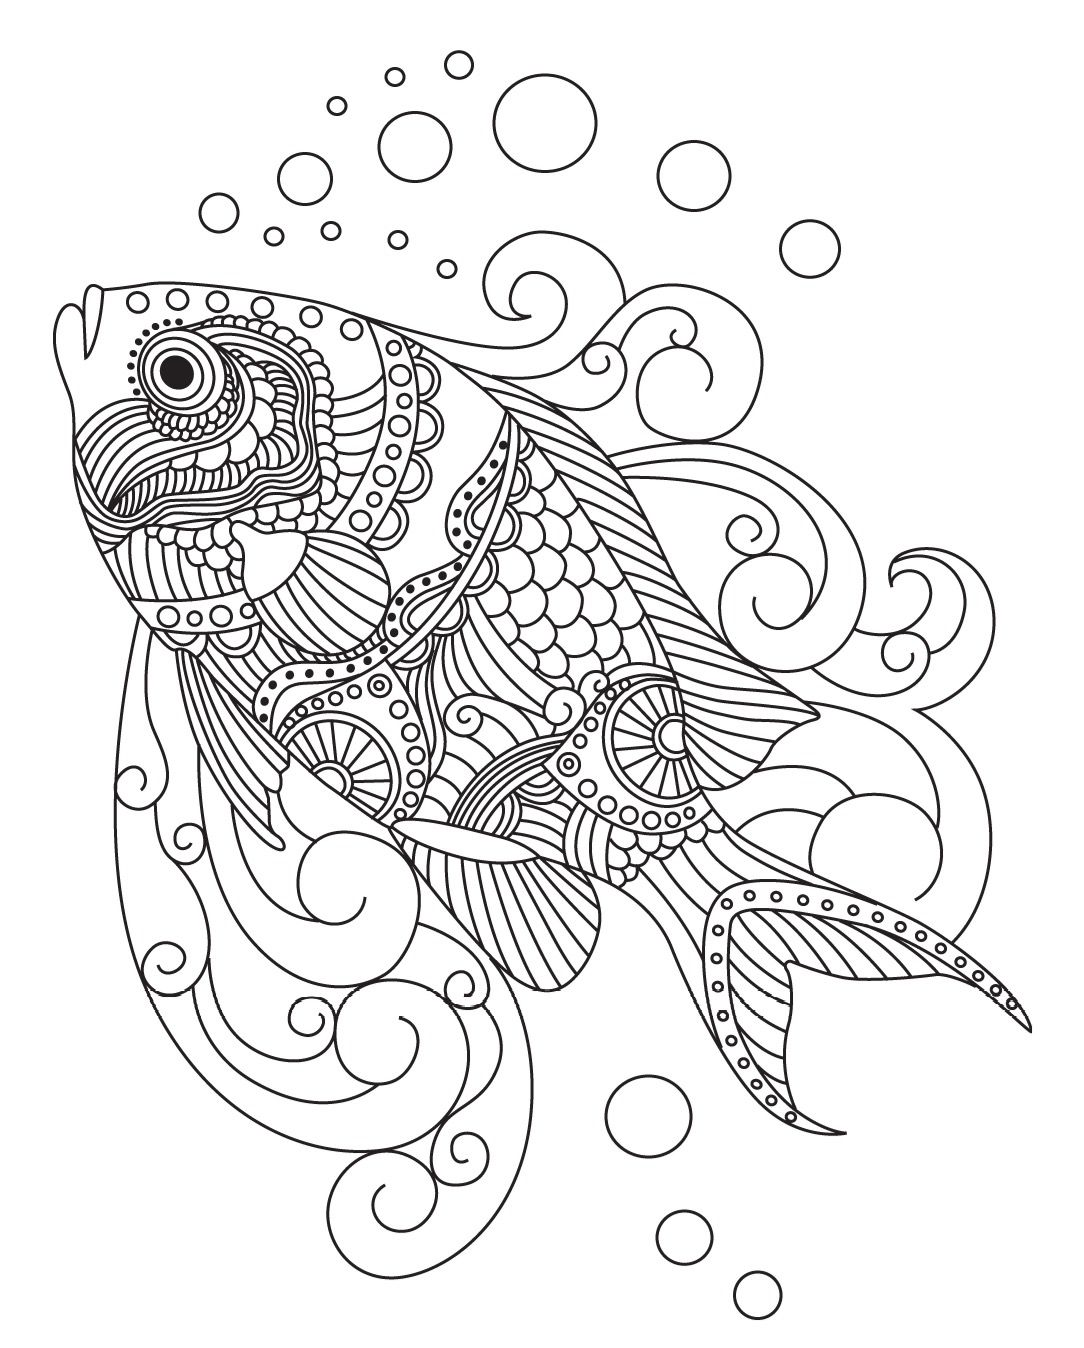 Relicaaa I Will Send You 160 Printable Coloring Pages Of Floral Mandalas And Animals For 15 On Fiverr Com Mandala Coloring Pages Mandala Coloring Books Mandala Coloring